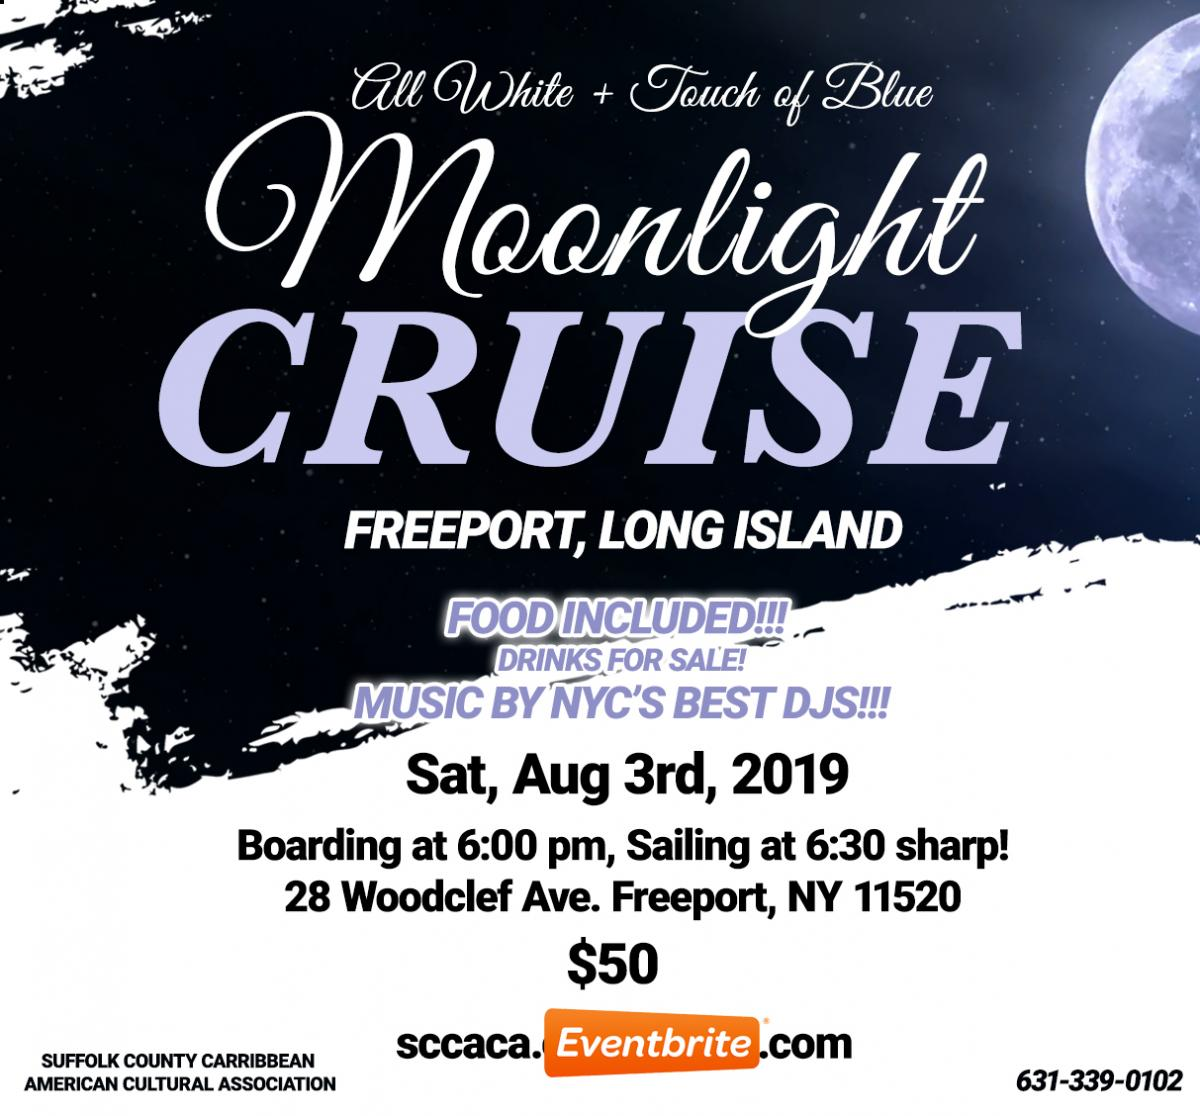 Long Island Moonlight Cruise flyer or graphic.